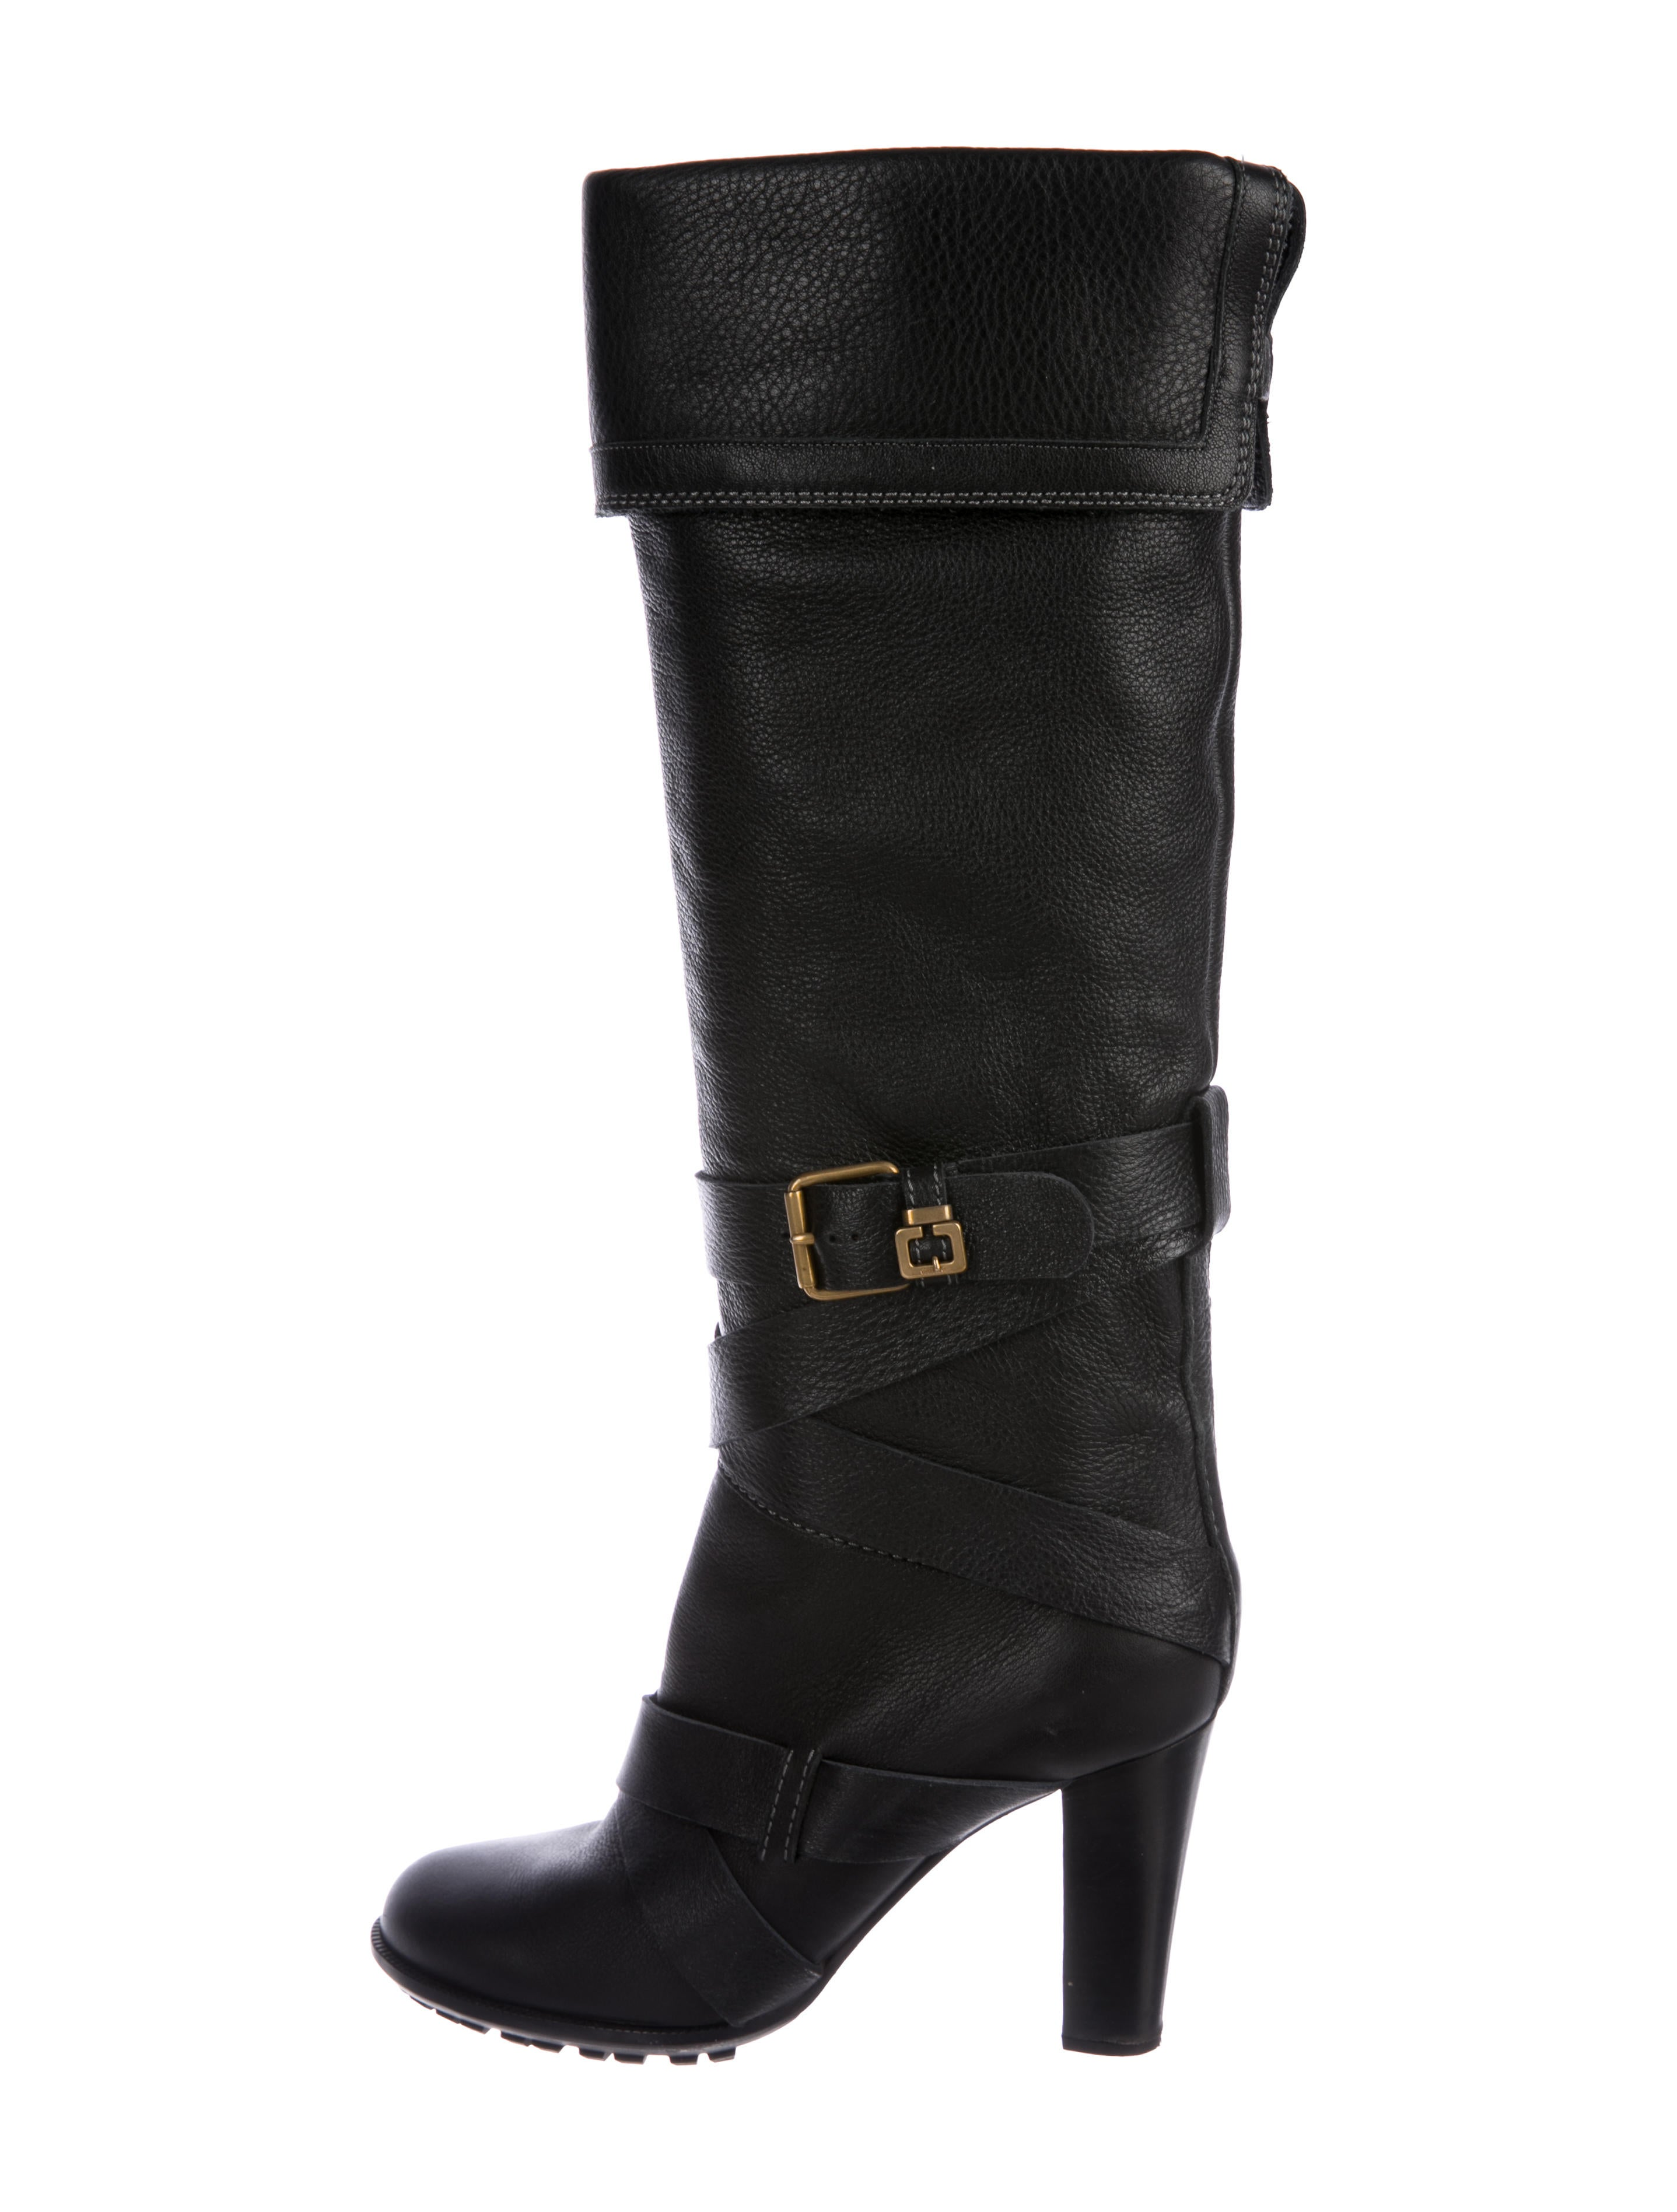 fashionable cheap online Chloé Multistrap Knee-High Boots outlet with paypal order online qy5nW